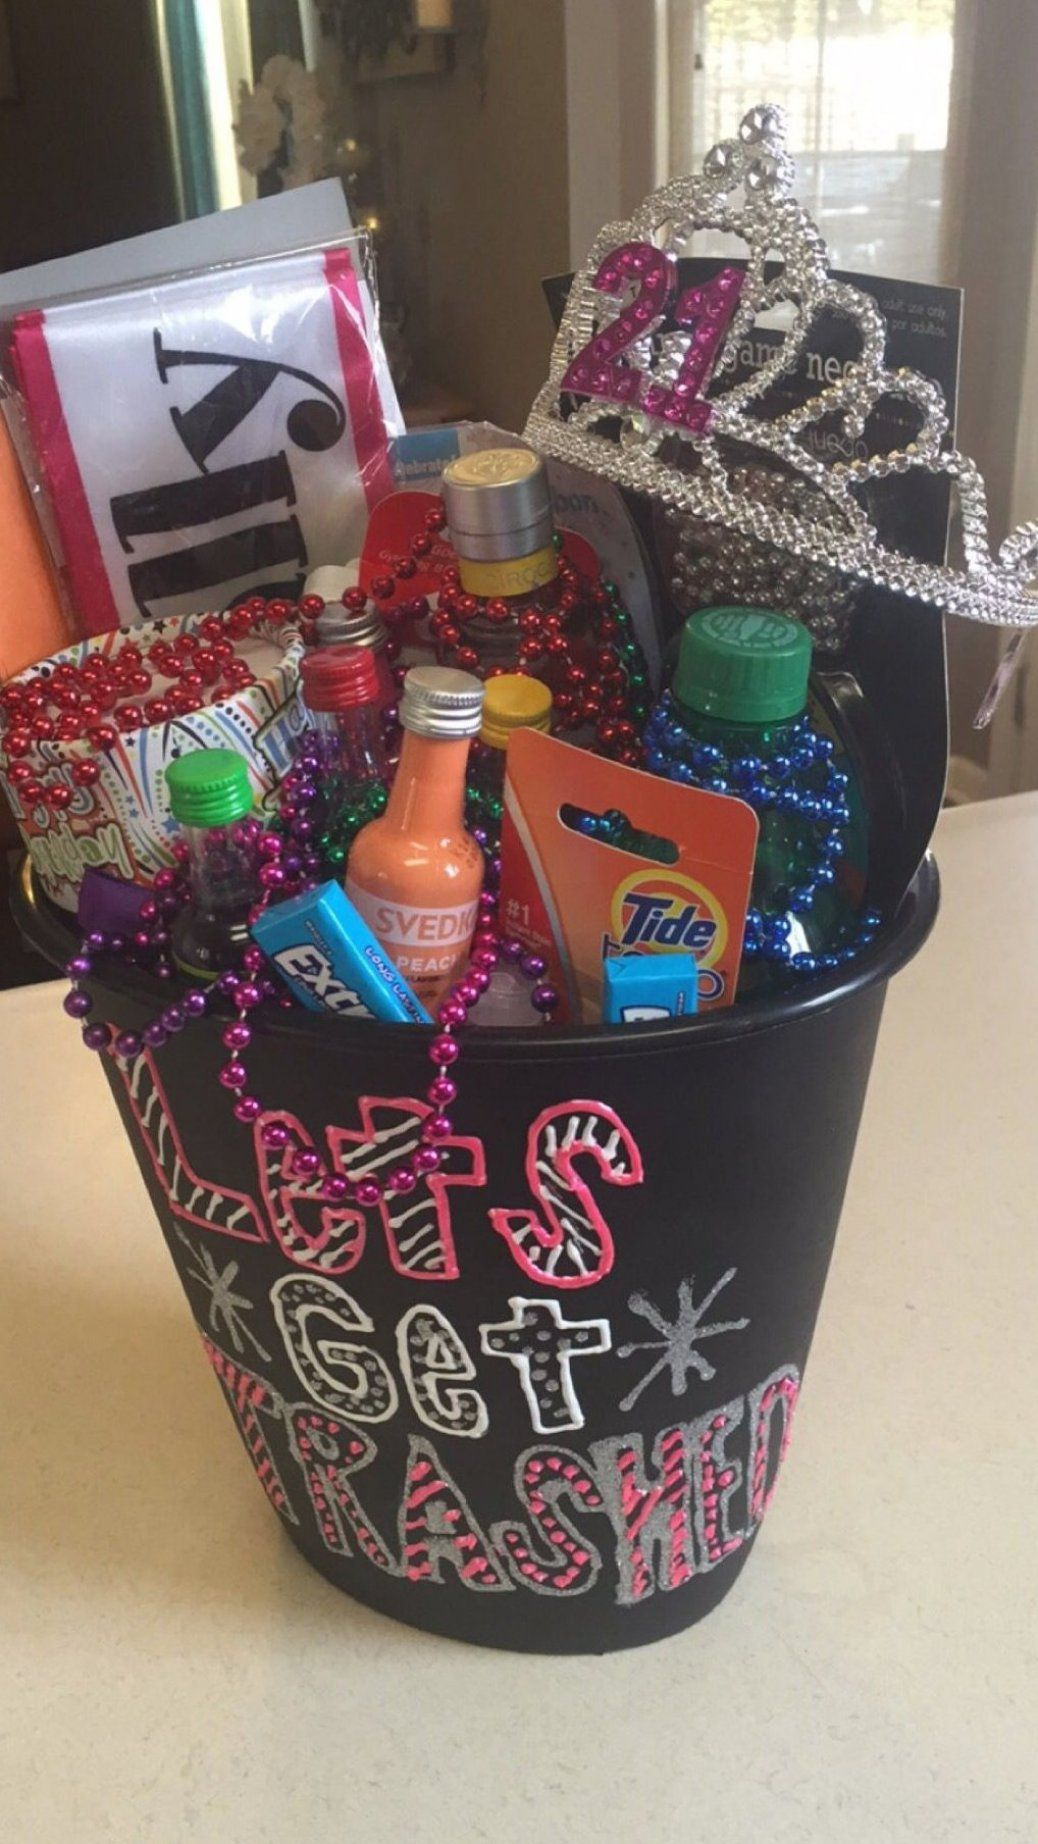 21st birthday gift in a trash can saying let s get unique